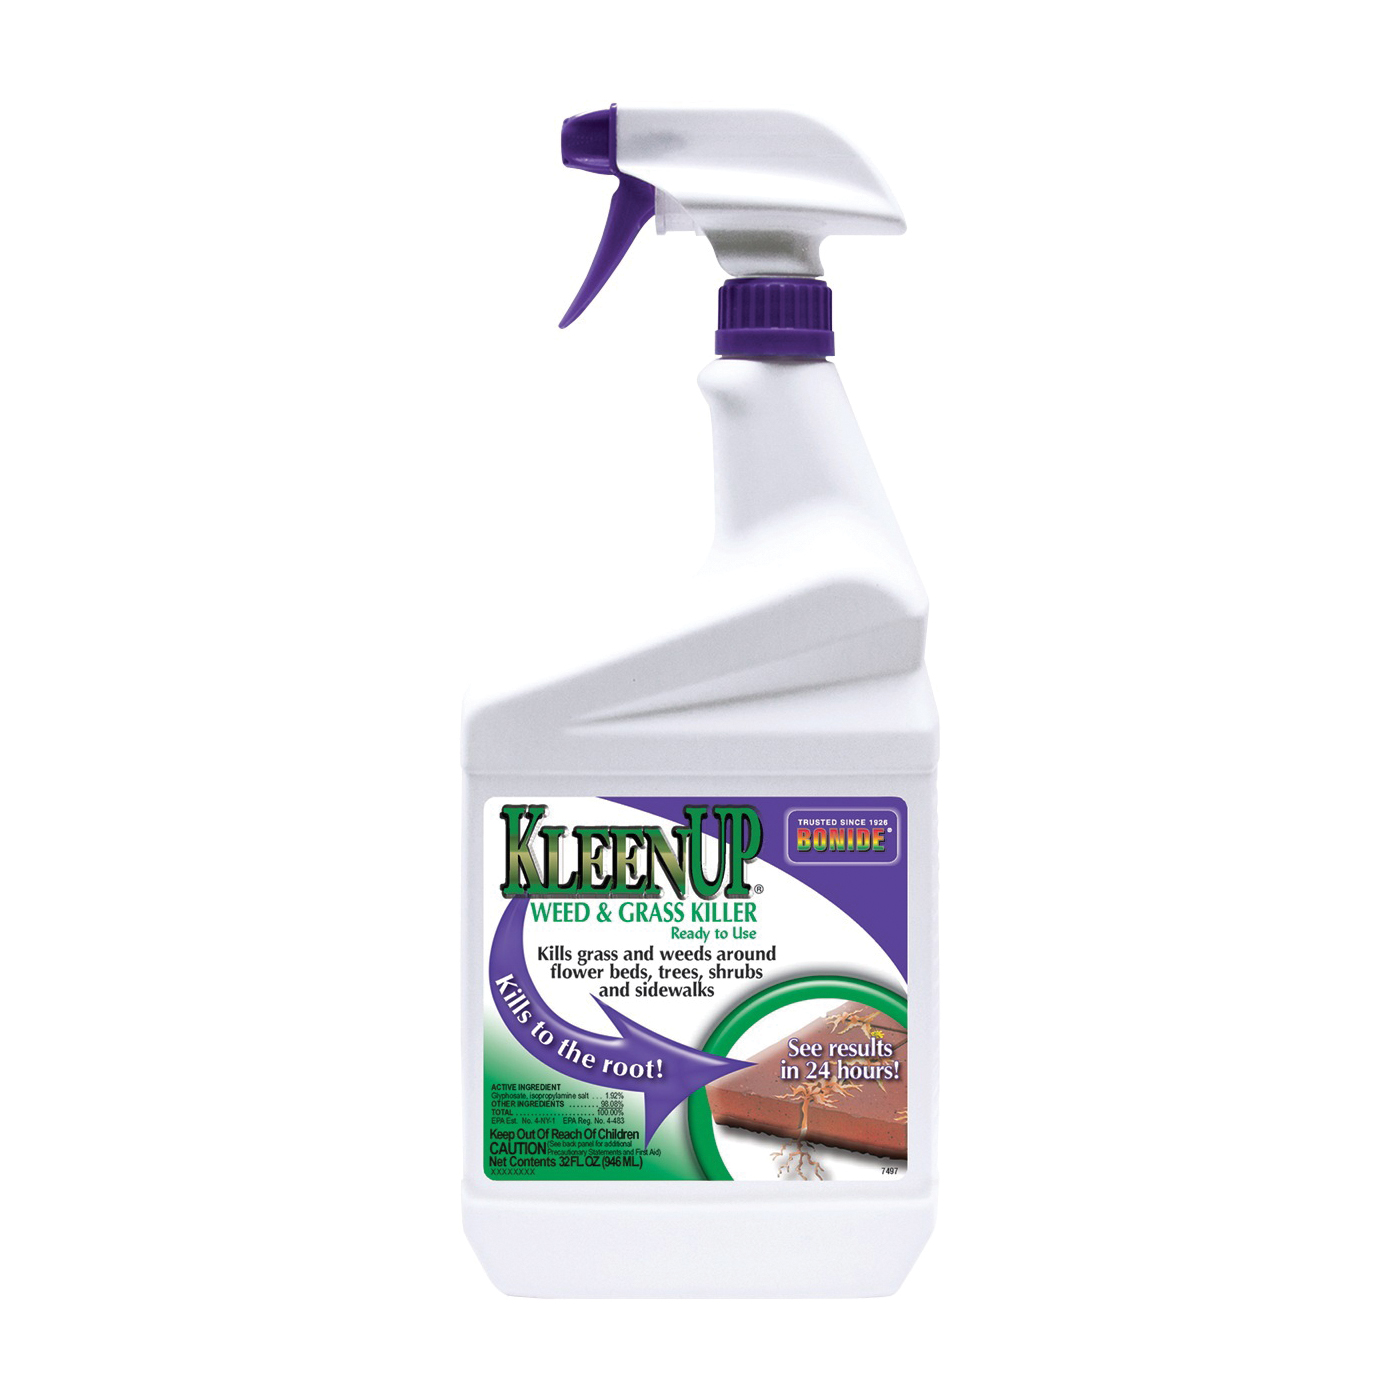 Picture of Bonide 7497 Weed and Grass Killer, Liquid, Off-White/Yellow, 1 qt Package, Bottle